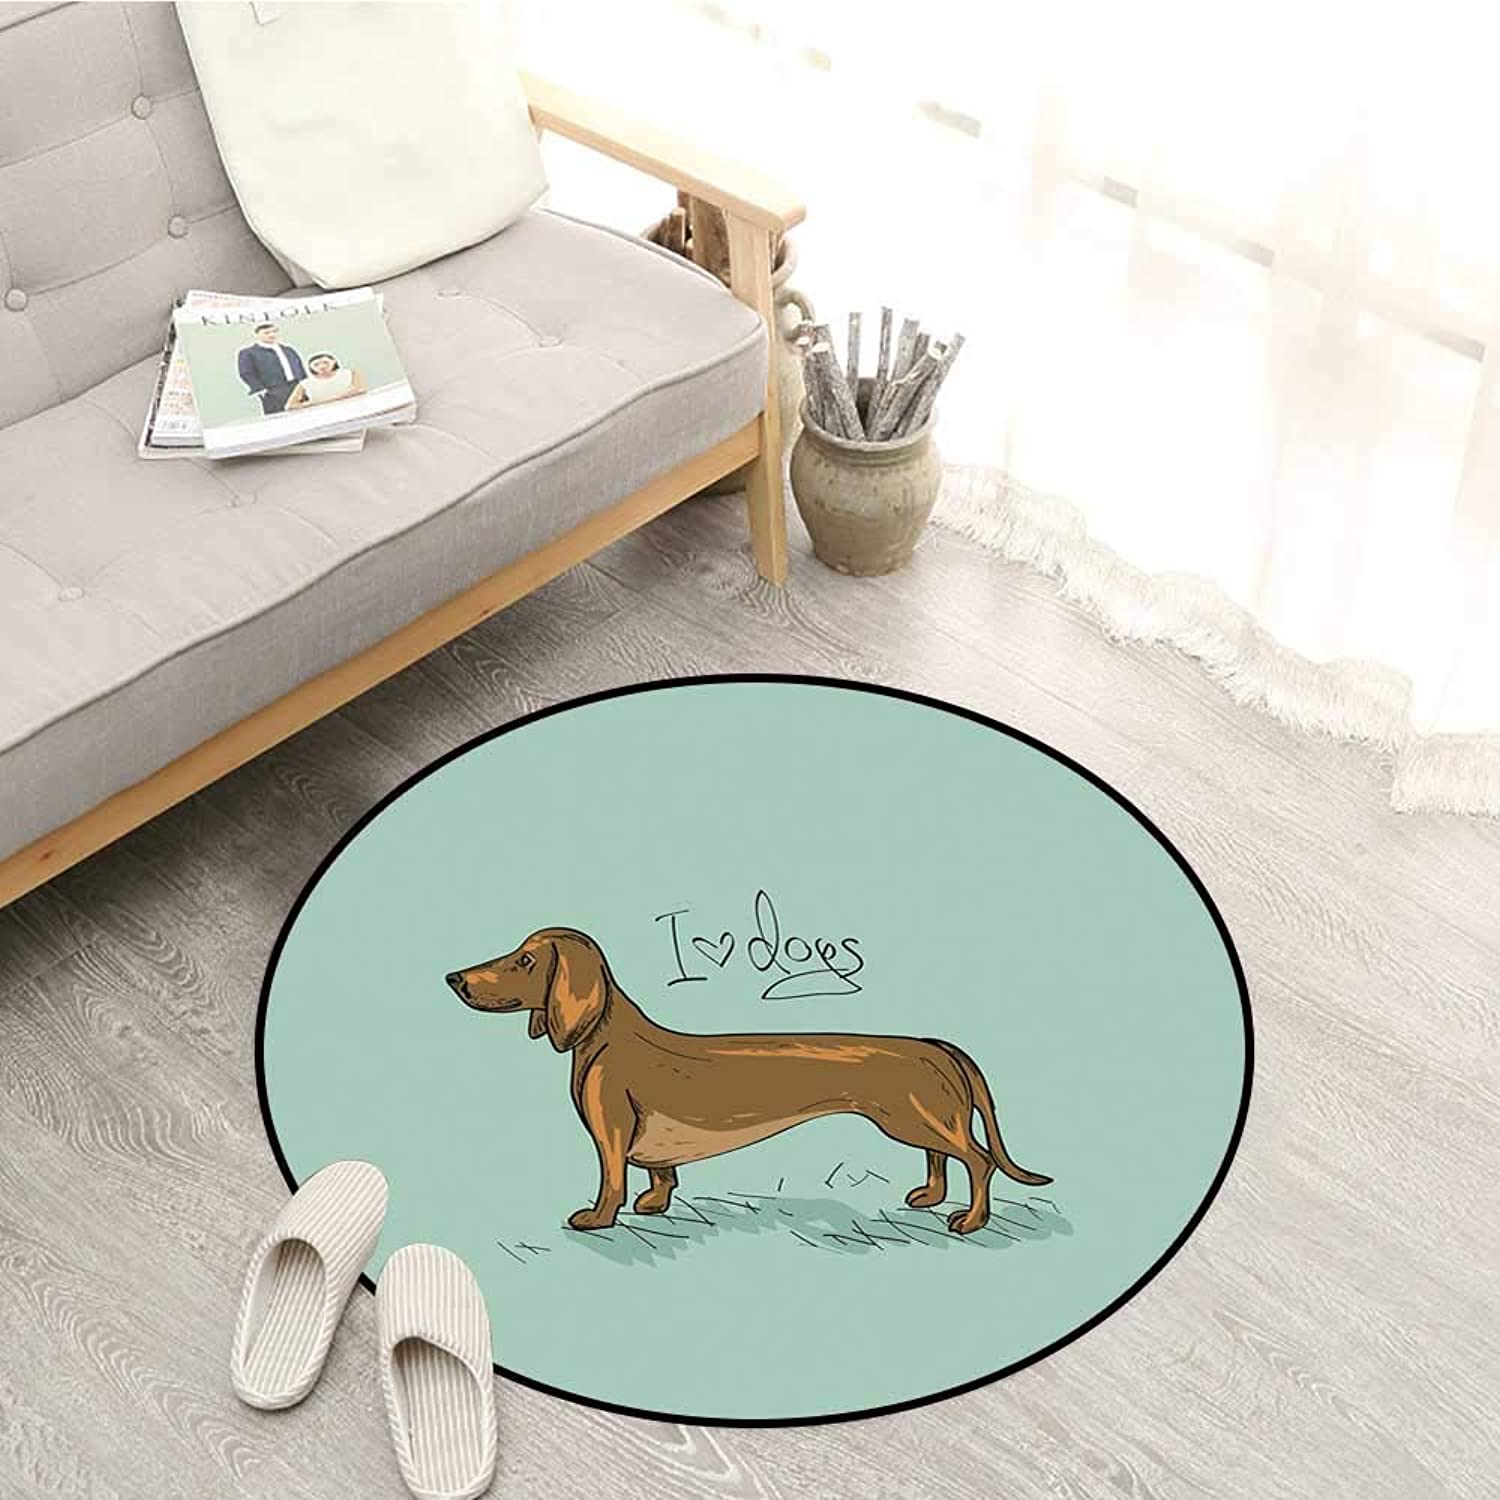 Dachshund Kids Rugs Dachshund Puppy on an Abstract Turquoise Background Pure Breed Animal Sofa Coffee Table Mat 4'3  Turquoise Brown Black